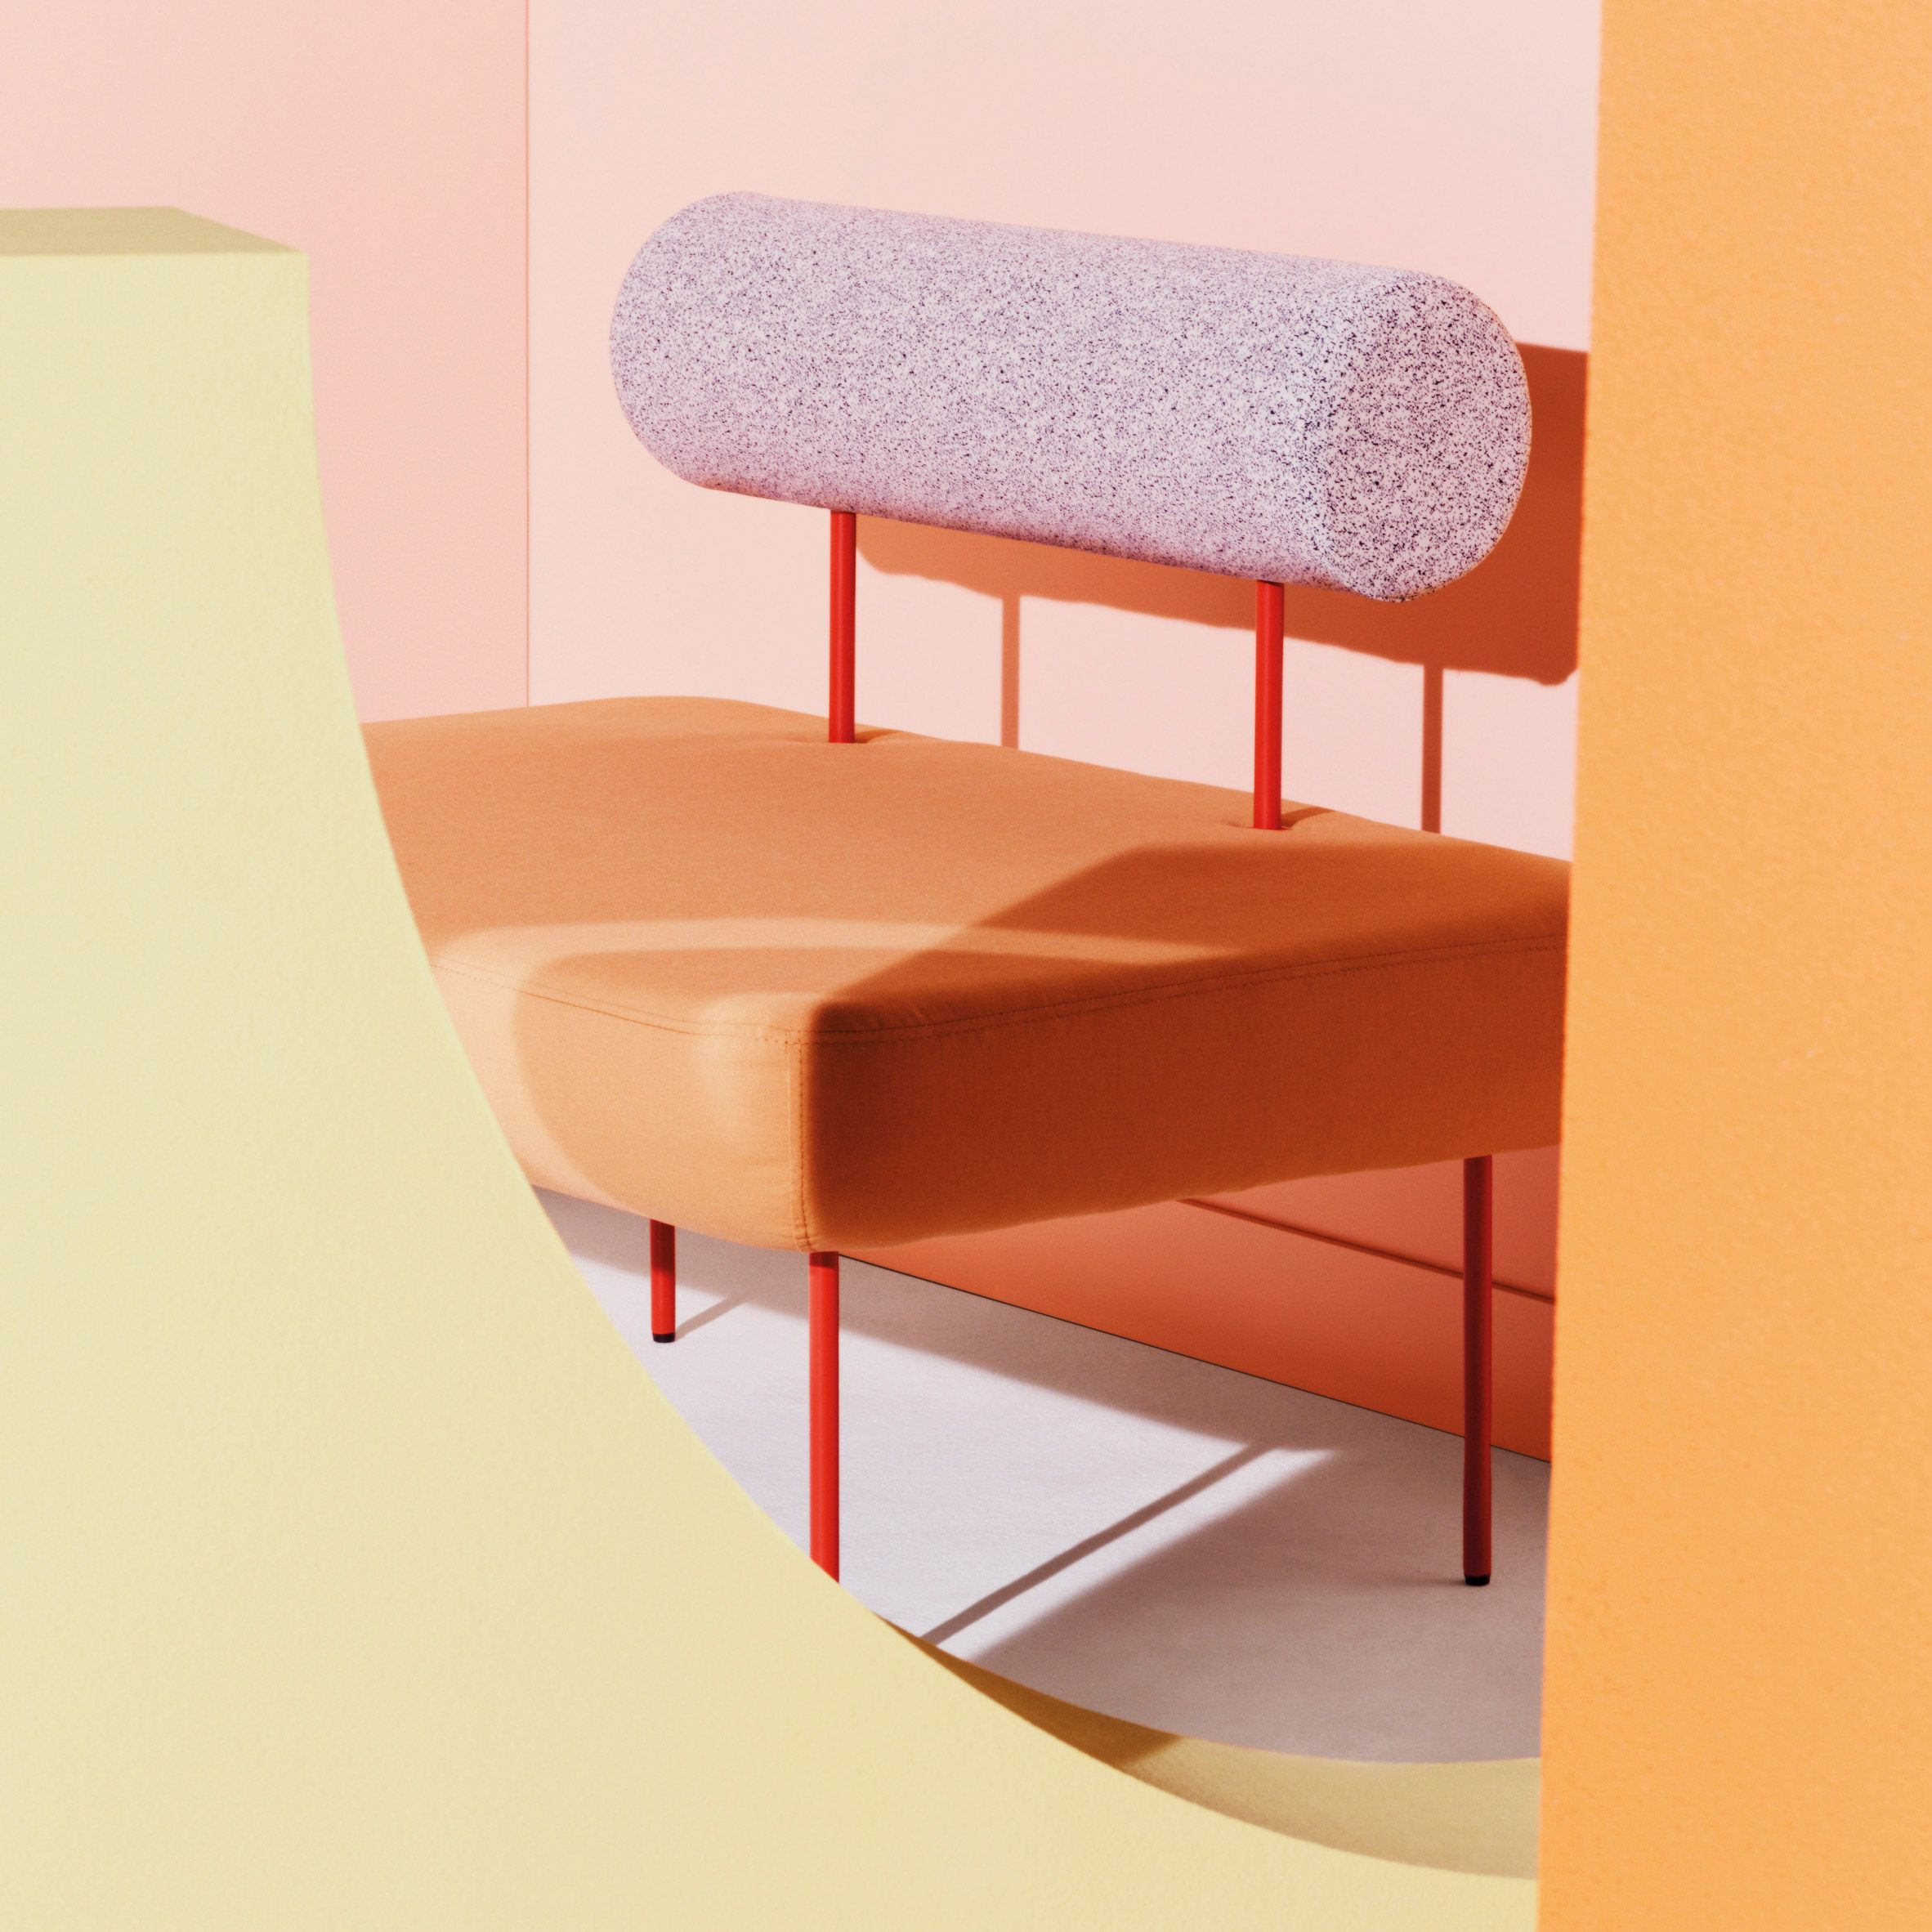 With Maison Objet Opening In Paris This Weekend Design Reporter Alice Morby Has Put Together A List Of The Top Five French Brands To See At Fair